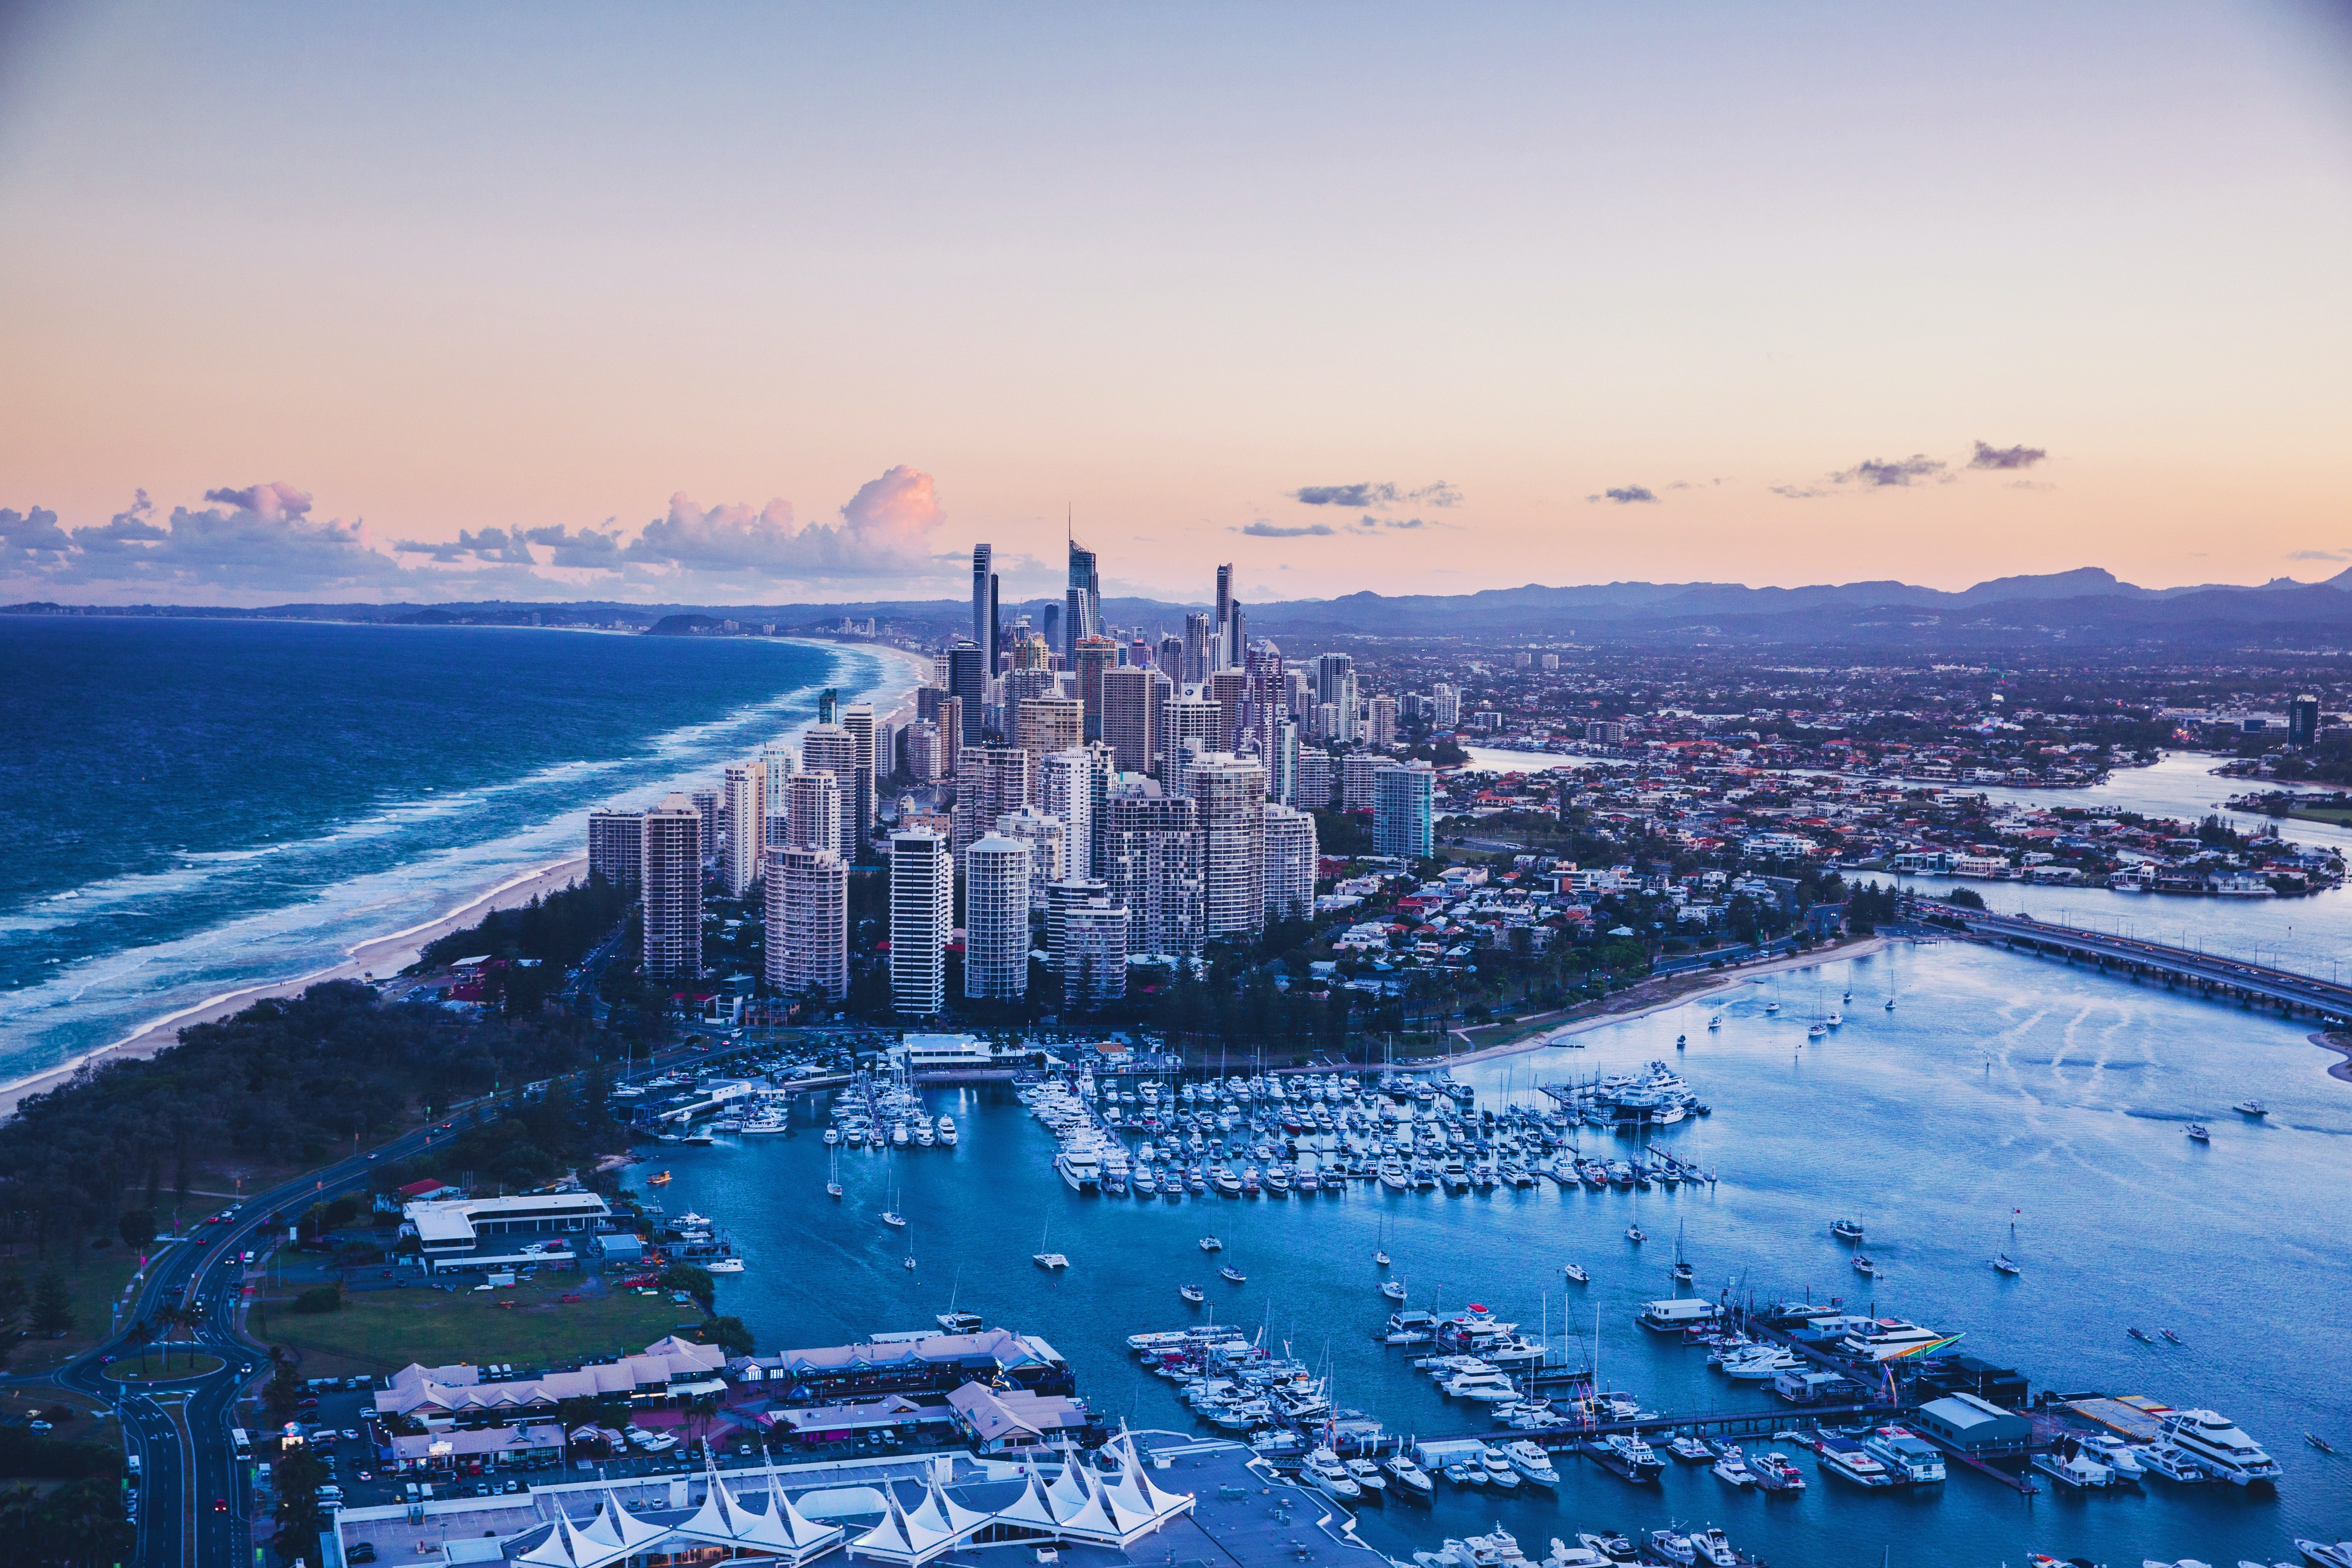 City of the gold coast in queensland